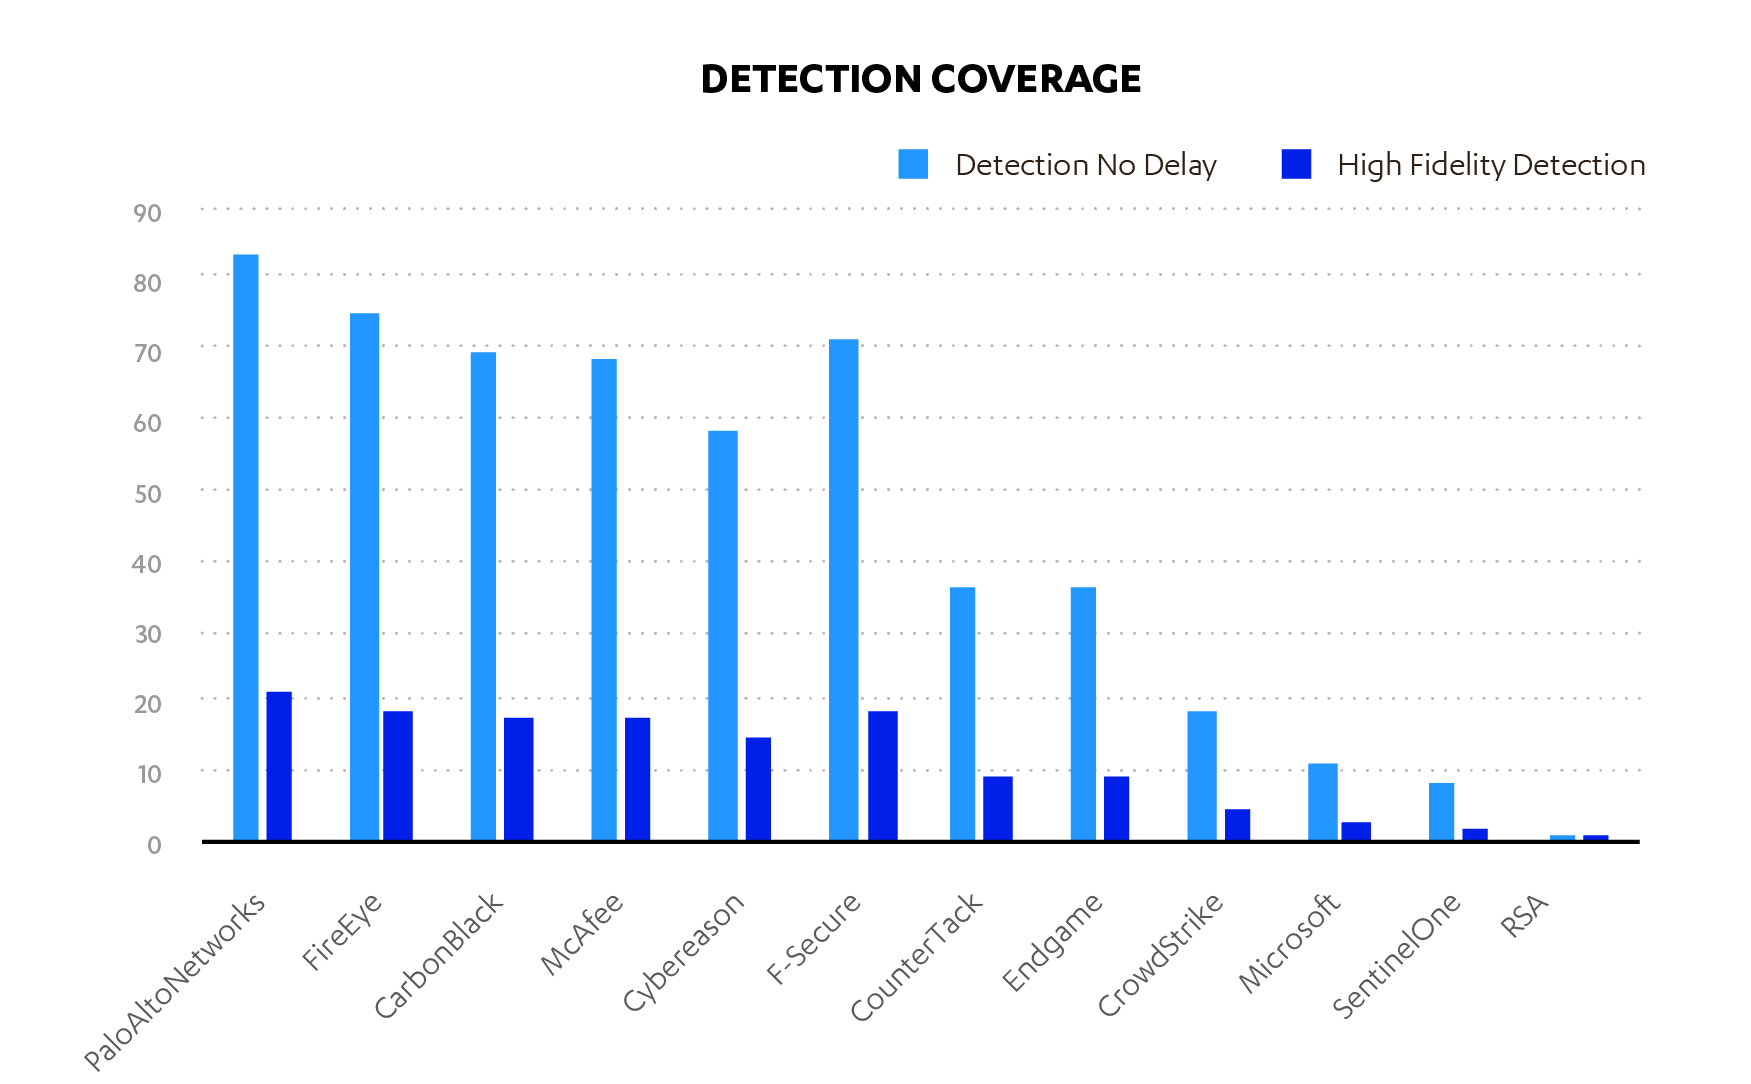 Detection coverage, mitre, F-Secure